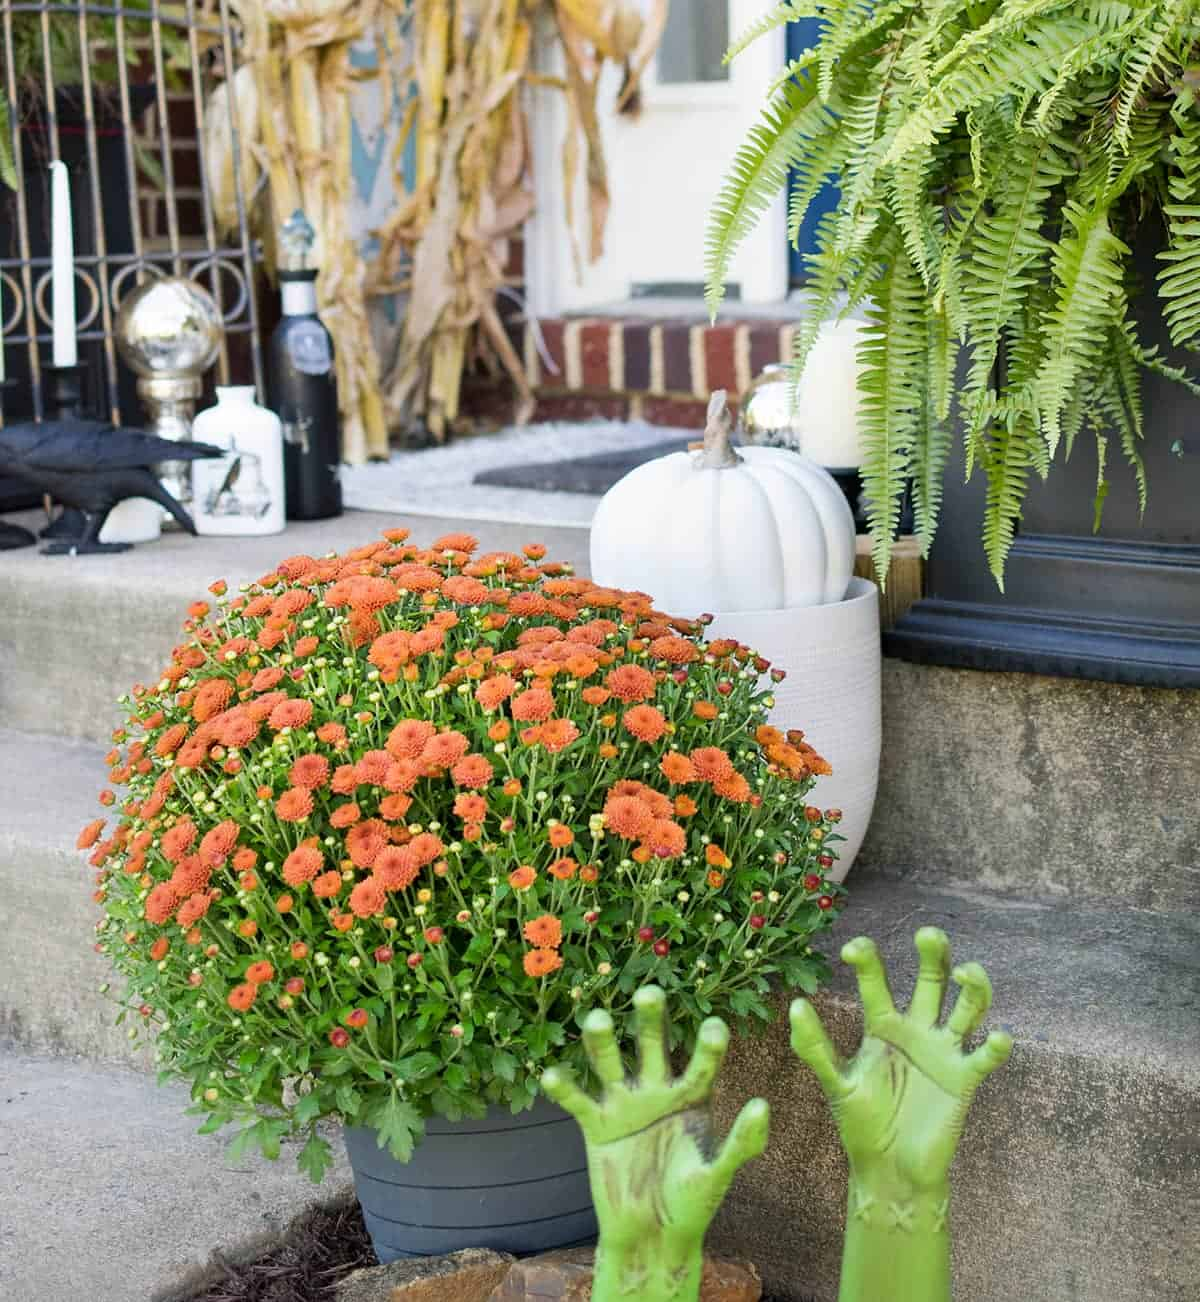 Halloween outdoor decor with white pumpkin, buried hands, ferns and orange mum.